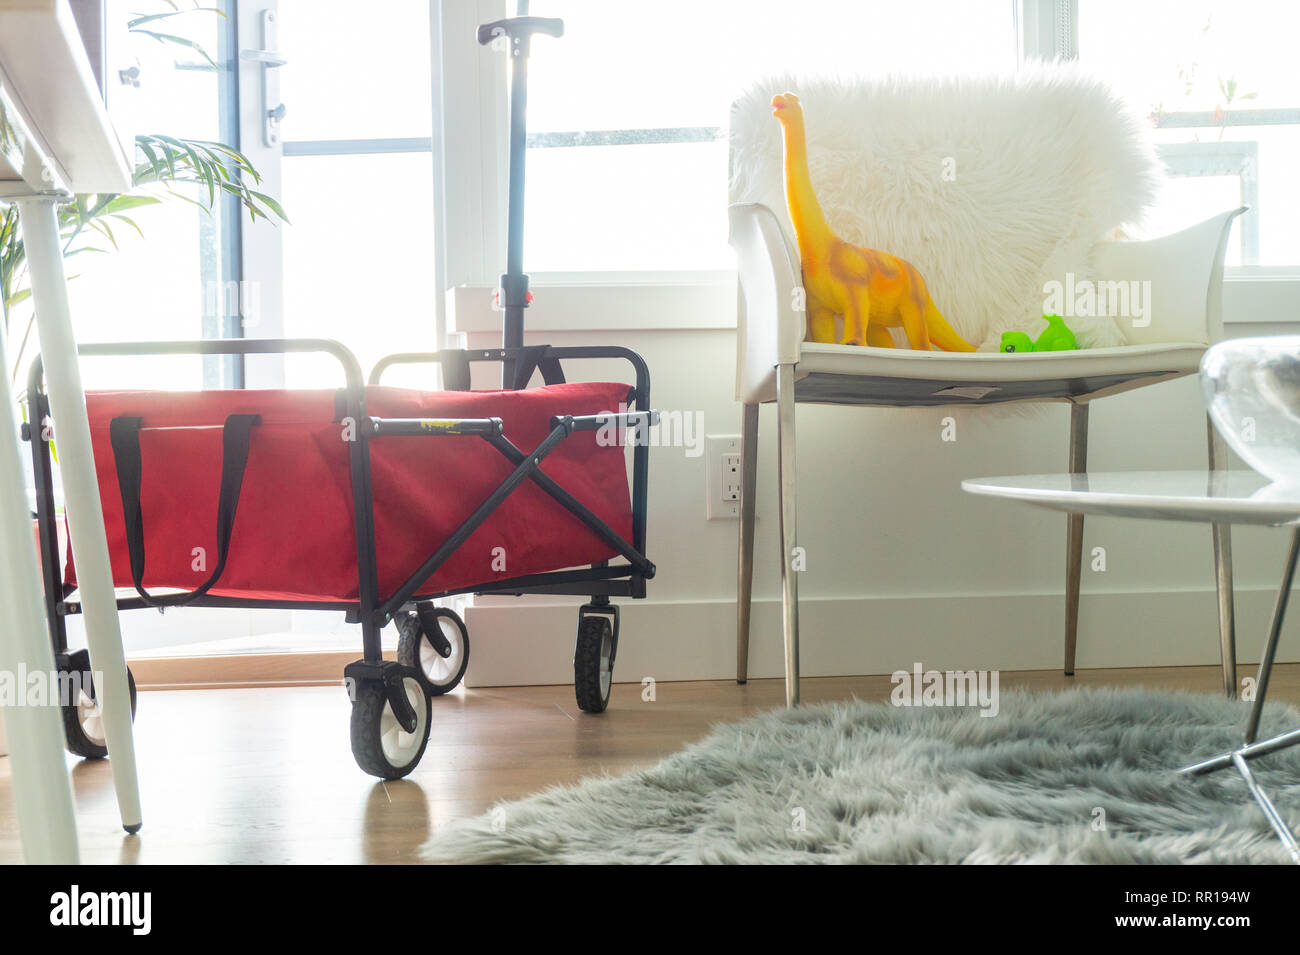 Red Foldable Wagon In Bright Apartment Living Room With